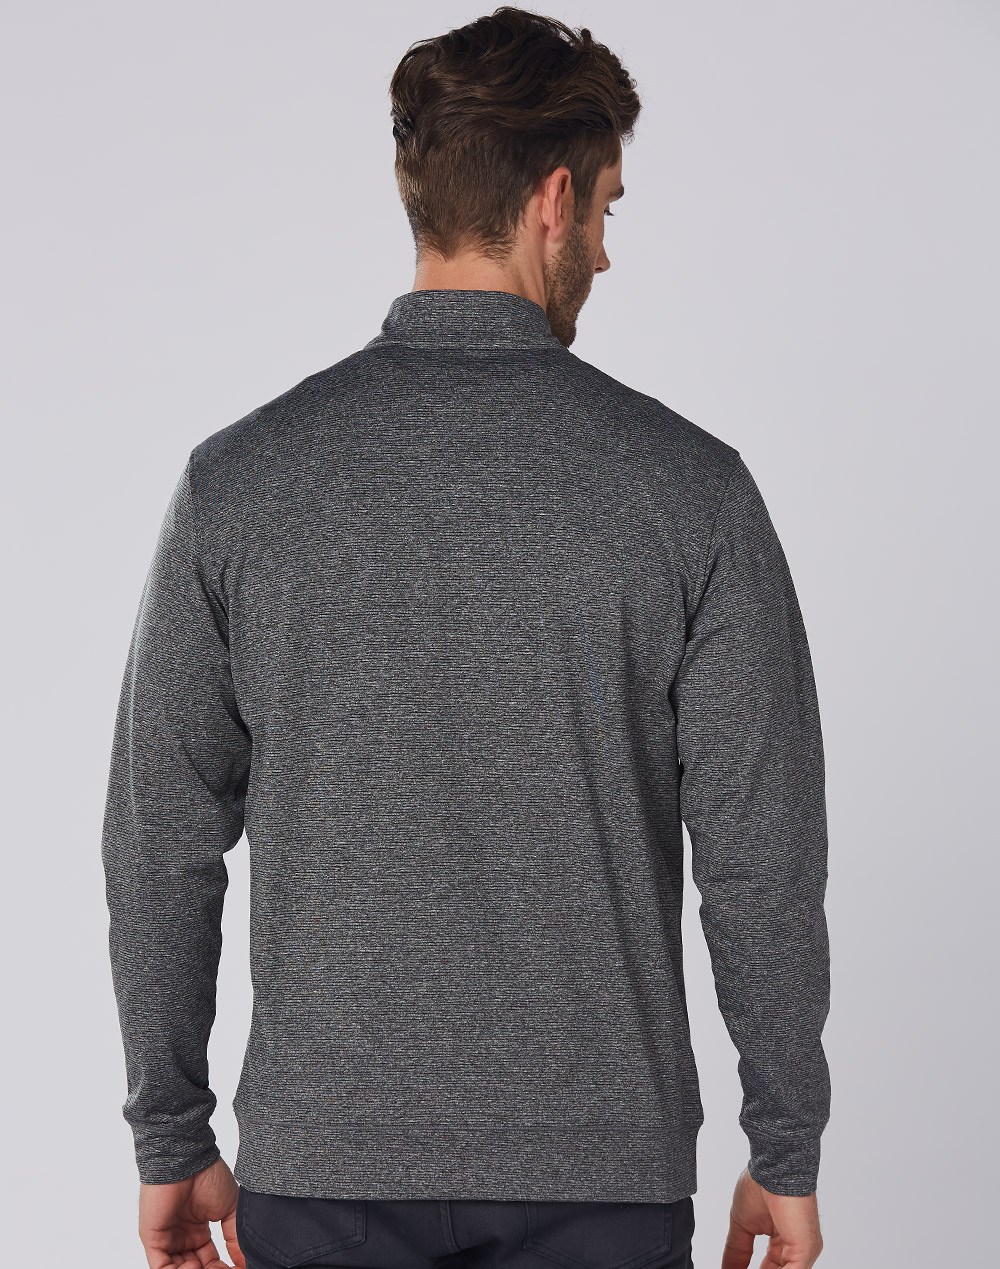 https://ws-imgs.s3-ap-southeast-1.amazonaws.com/OUTWEAR/FL25_Charcoal_Back_Model.jpg